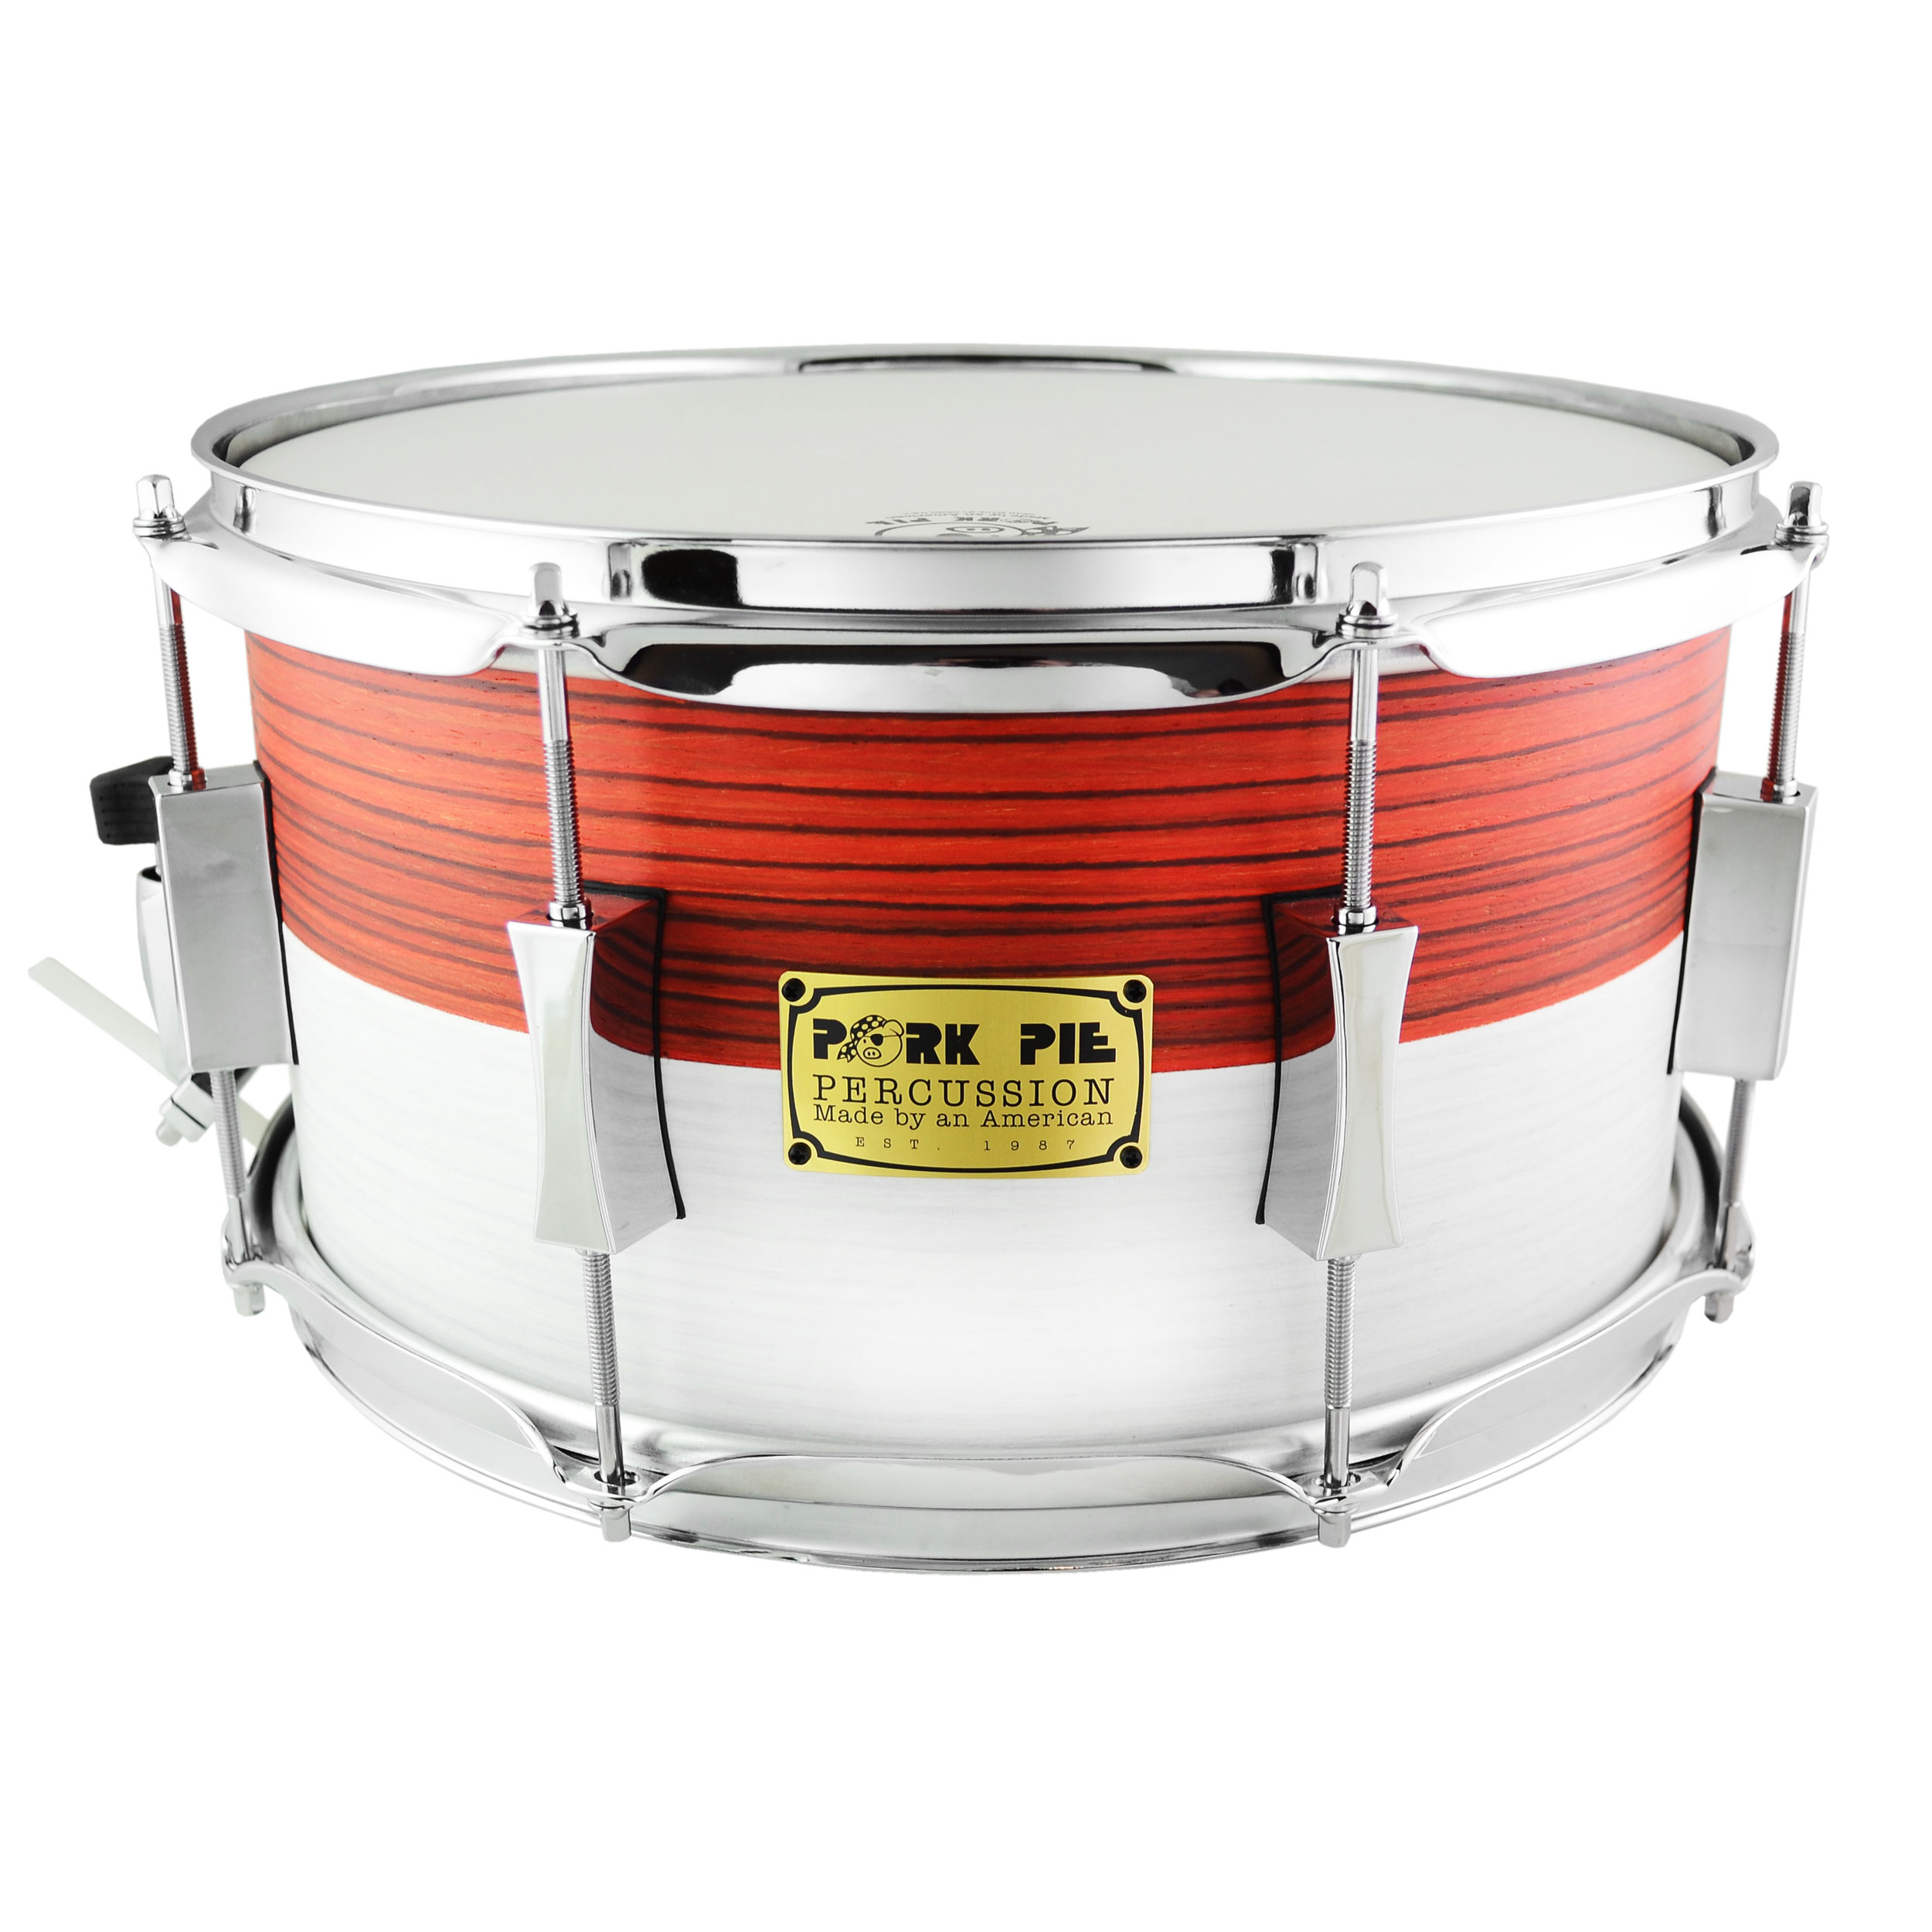 "Pork Pie Percussion 7"" x 13"" USA Custom Maple Snare Drum in Singaporean Flag Veneer"